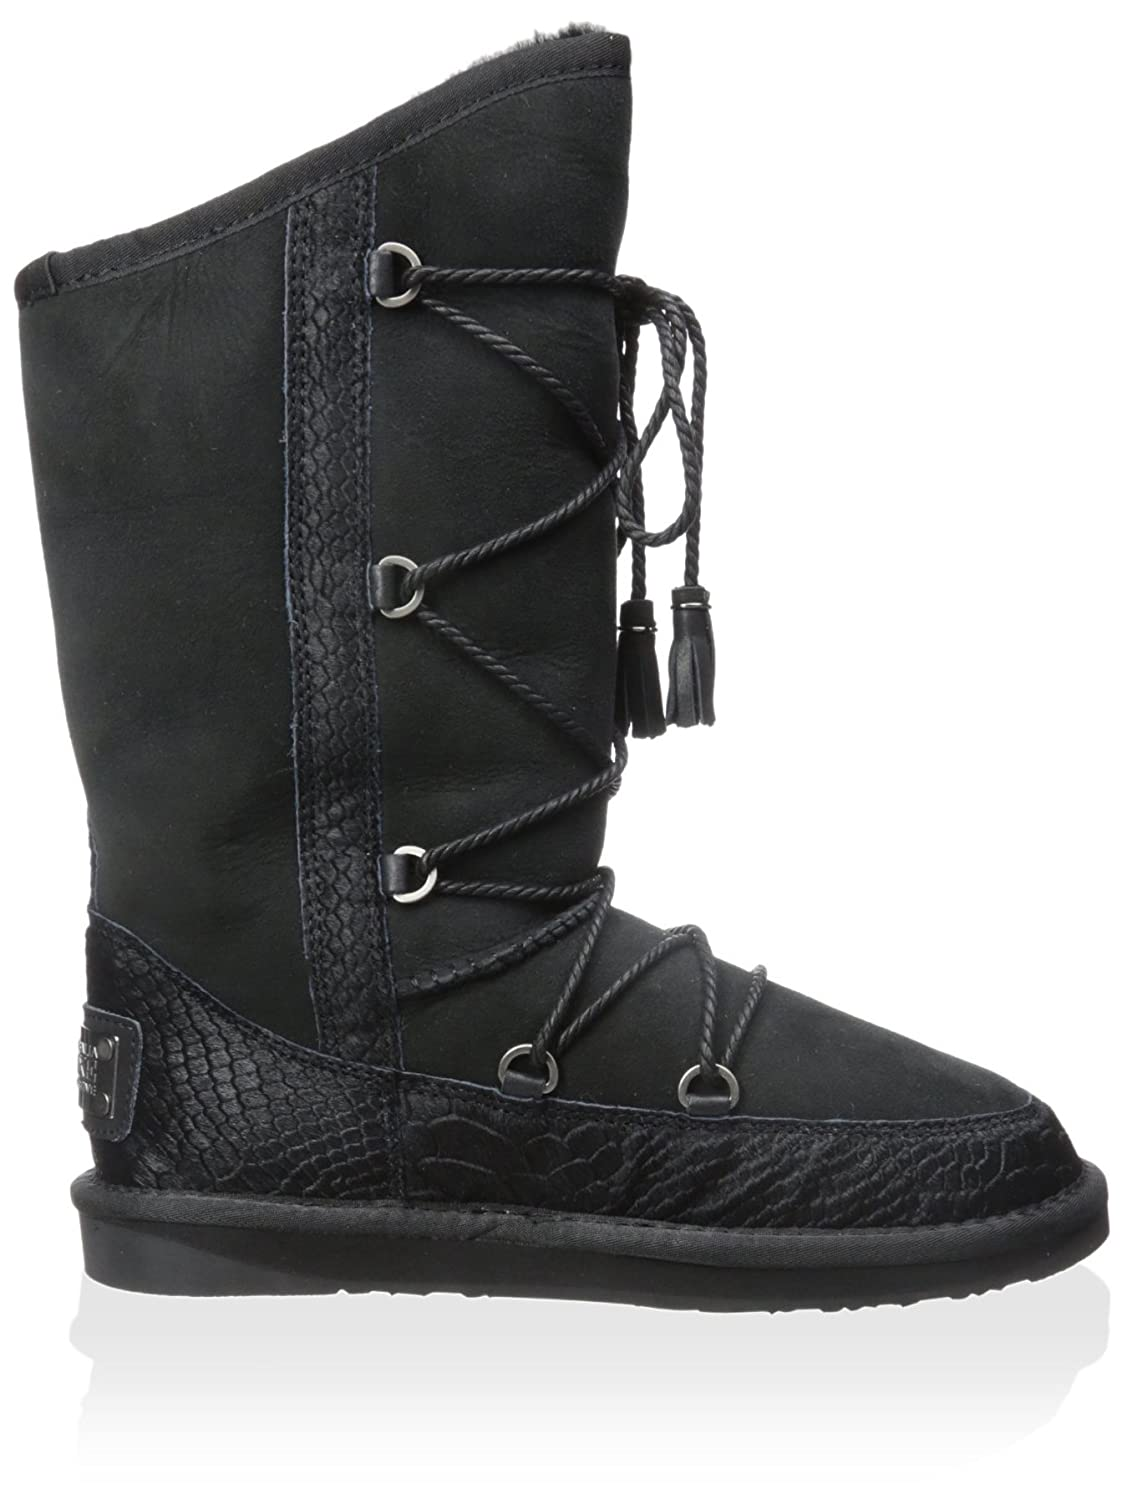 Australia Luxe Collective Women's Norse Lace up Mid Shearling Boot B011QS4G54 39 M EU/8 M US|Black